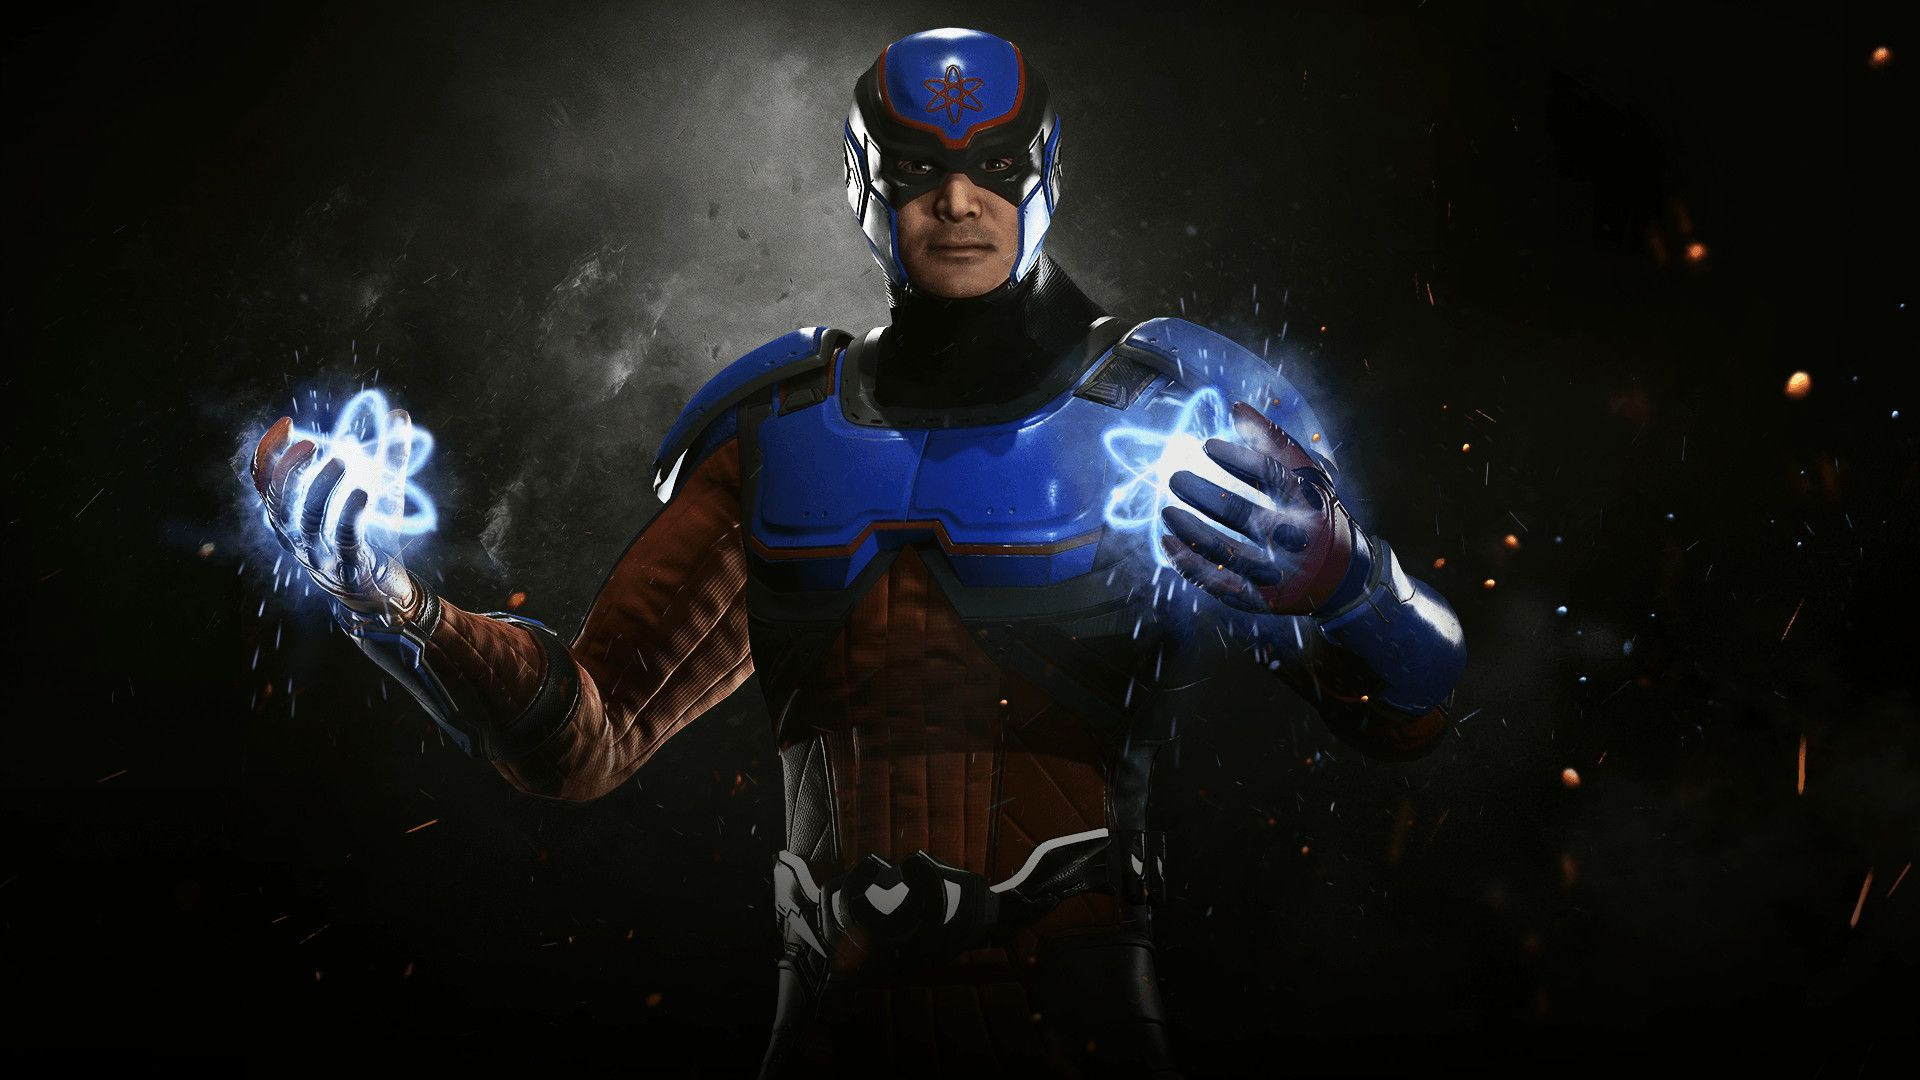 Zack Snyder Shares New Photo Of The Atom From His Justice